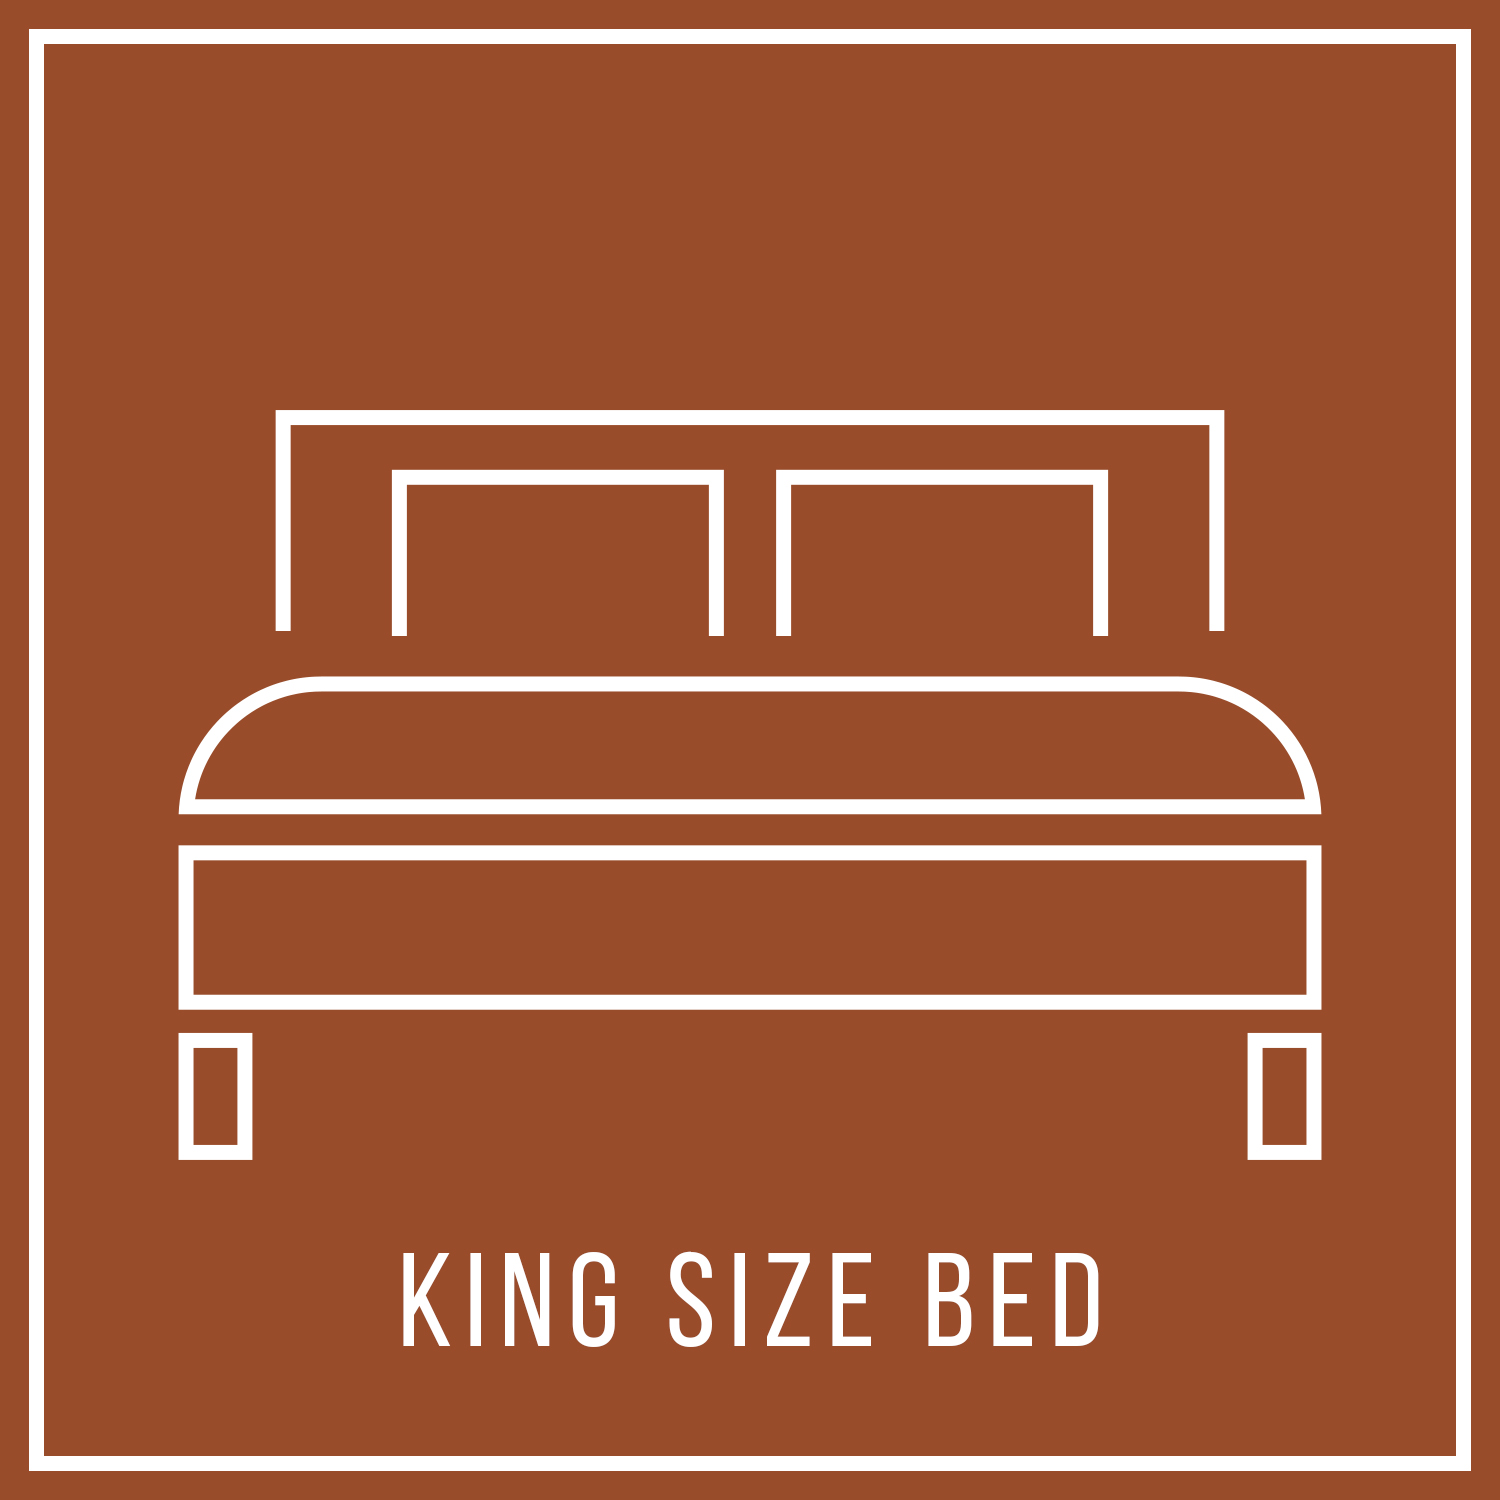 aya-kapadokya-room-features-terracotta-suite-square-king-size-bed